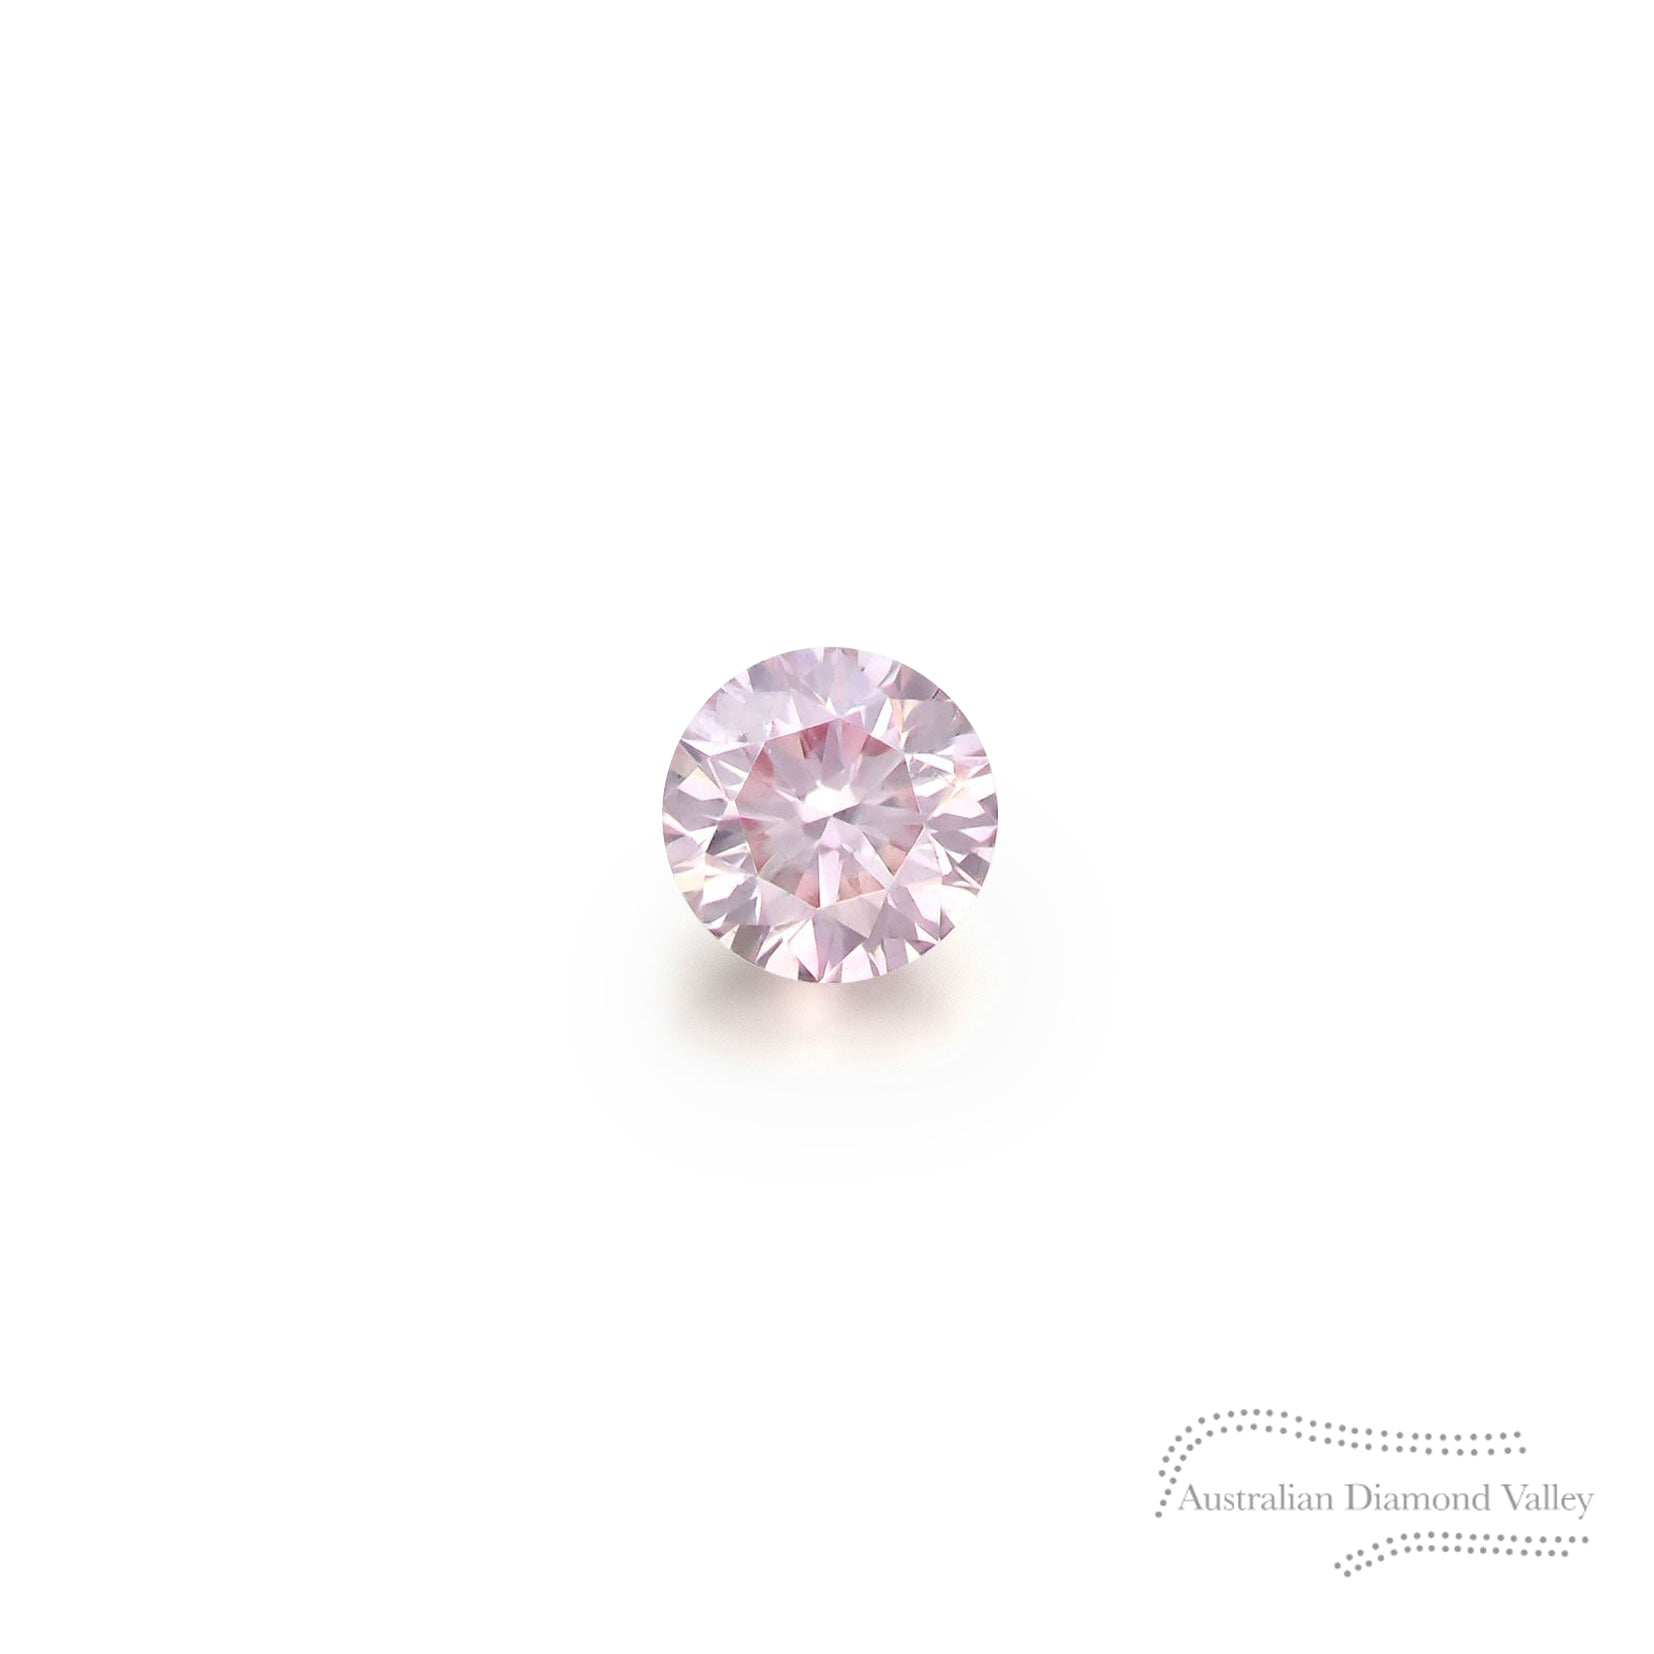 .01ct Authentic Australian Pink Argyle Diamond - 7P